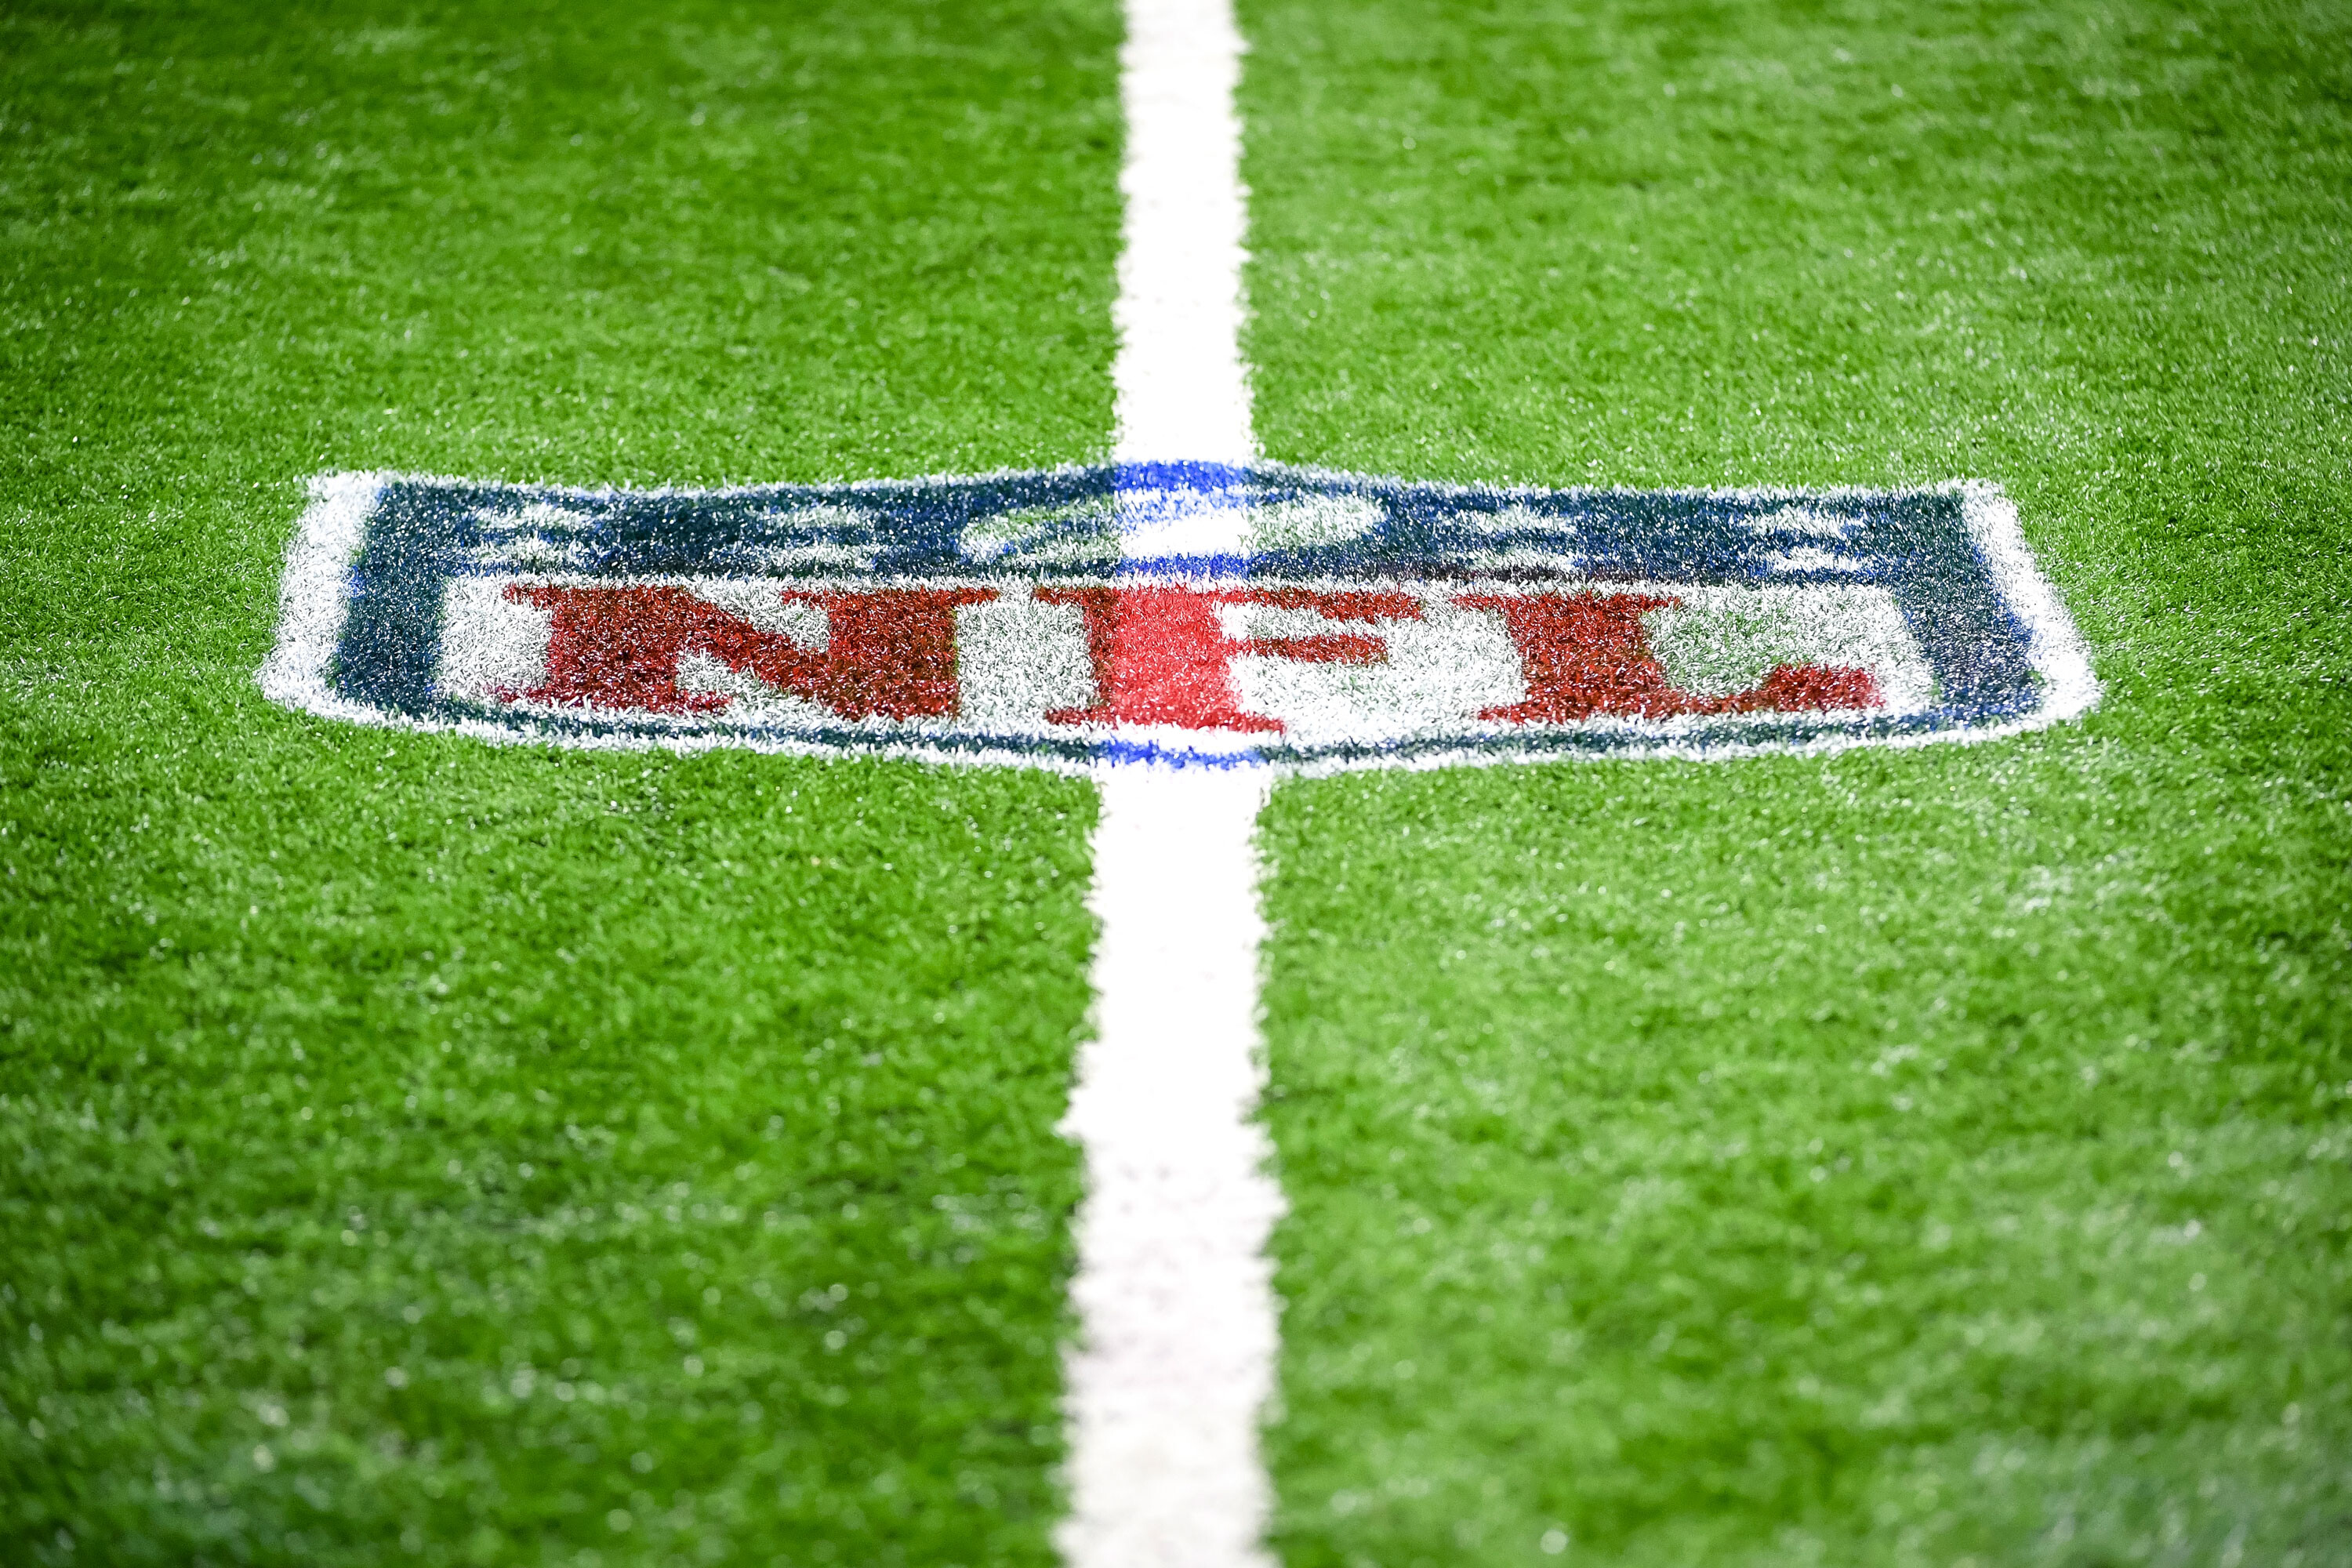 NYT: Agreement reached to scrap race as a factor in NFL concussion settlements